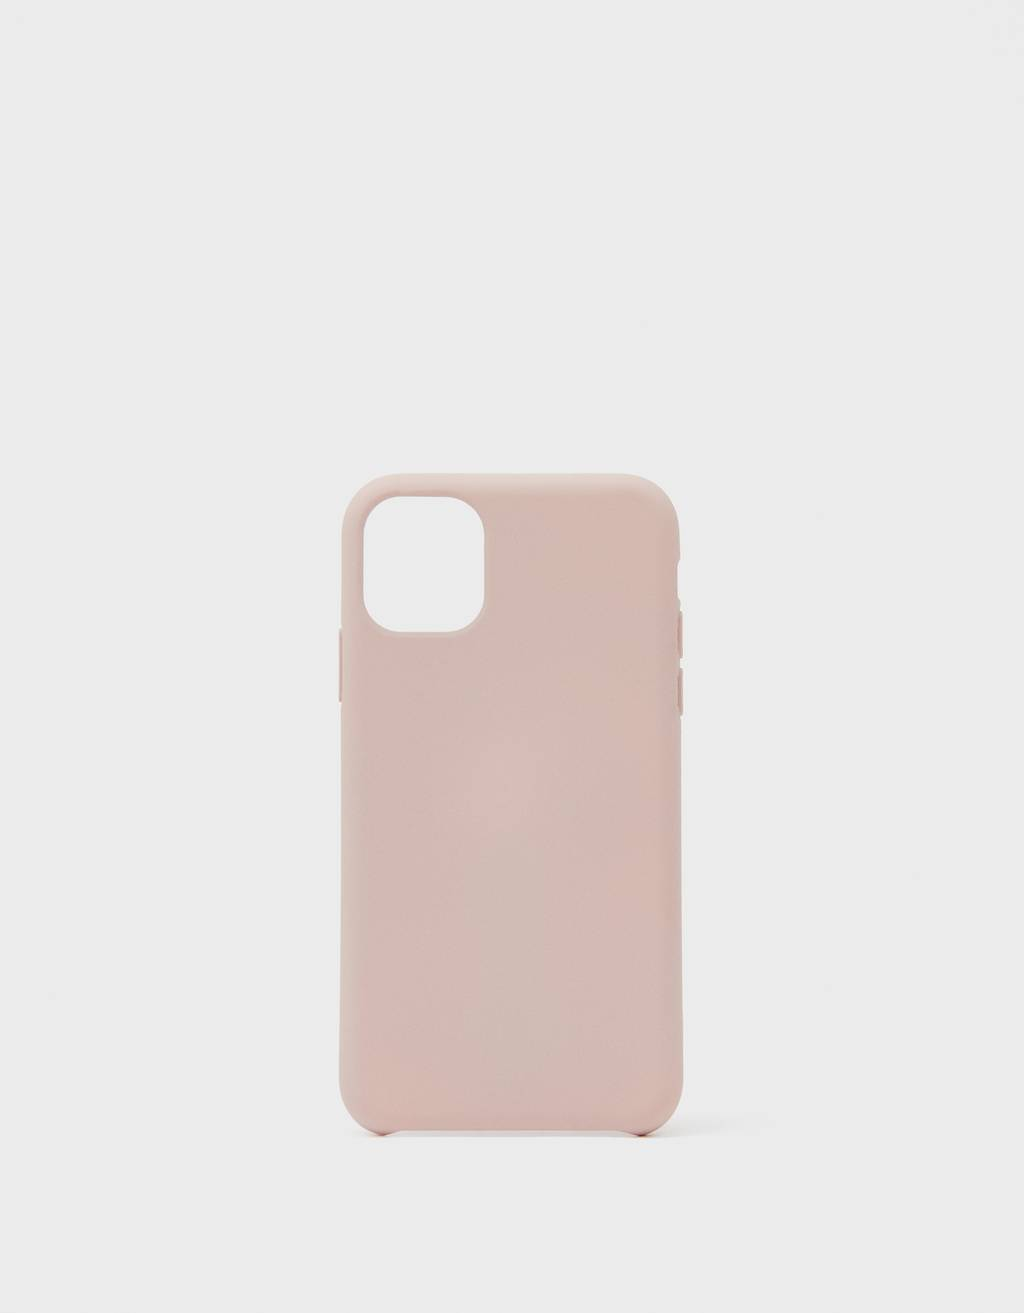 Coque unie iPhone 11 plus